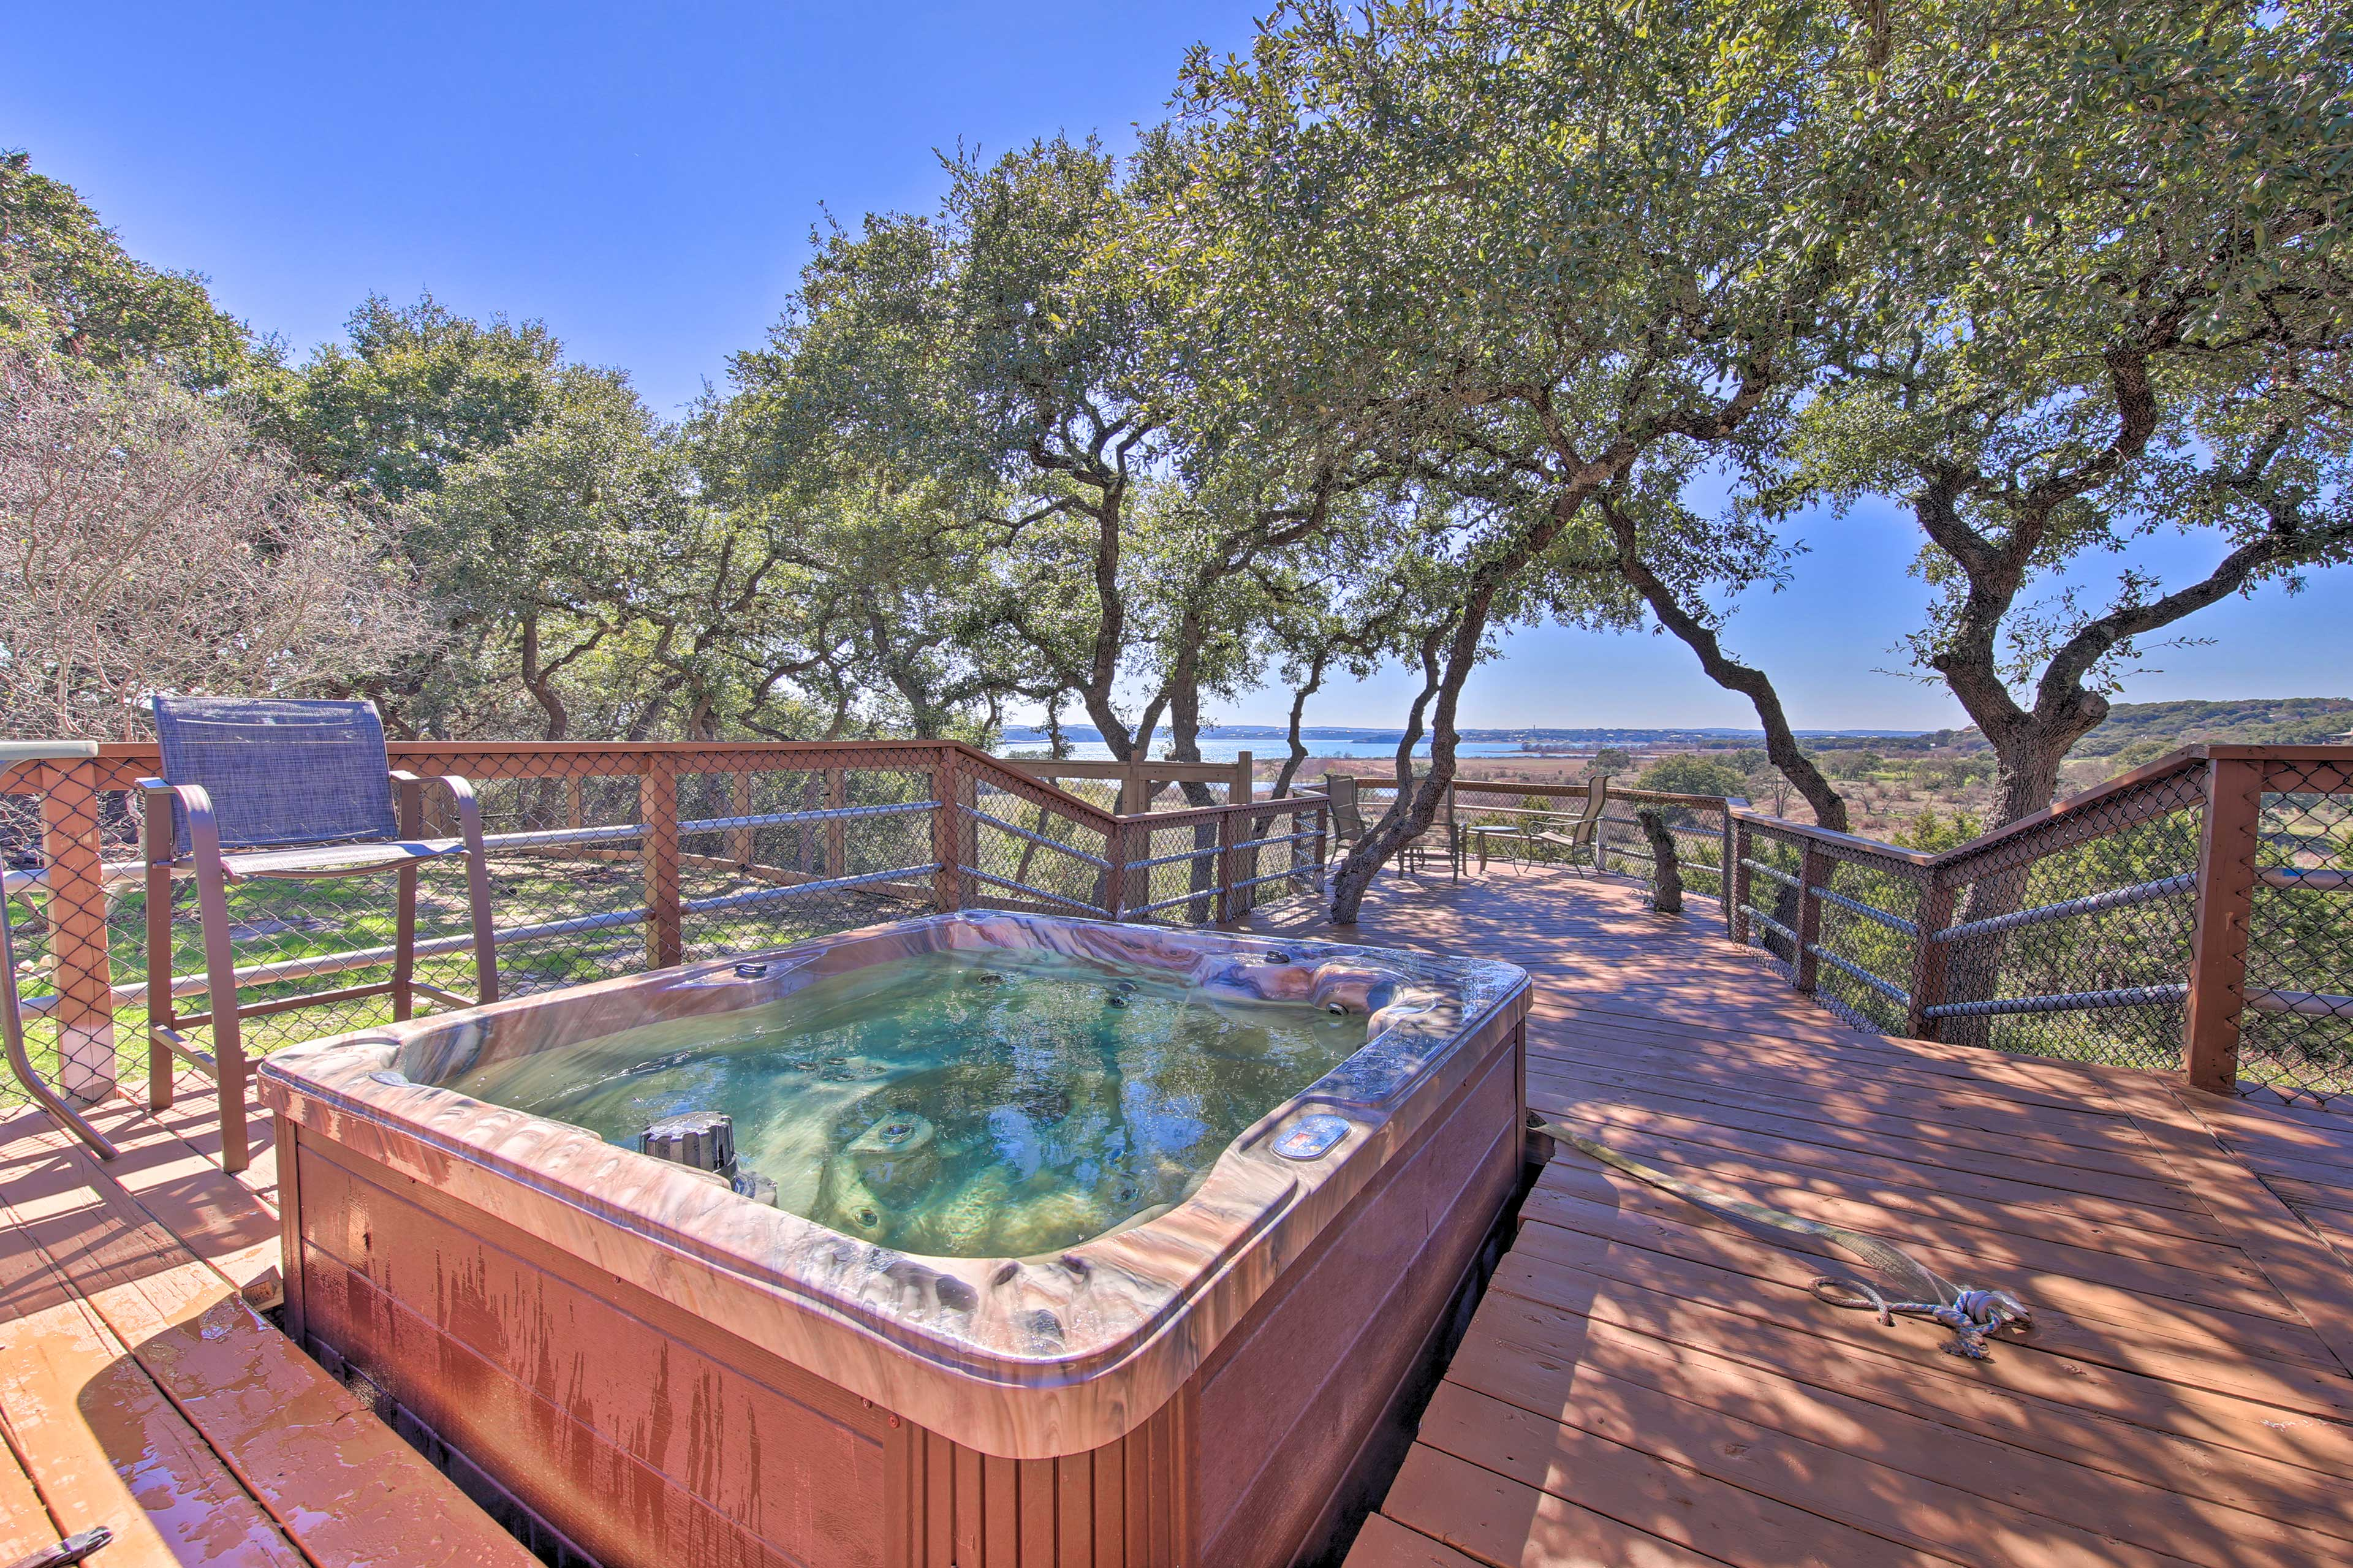 Outdoor amenities include a gorgeous hot tub.